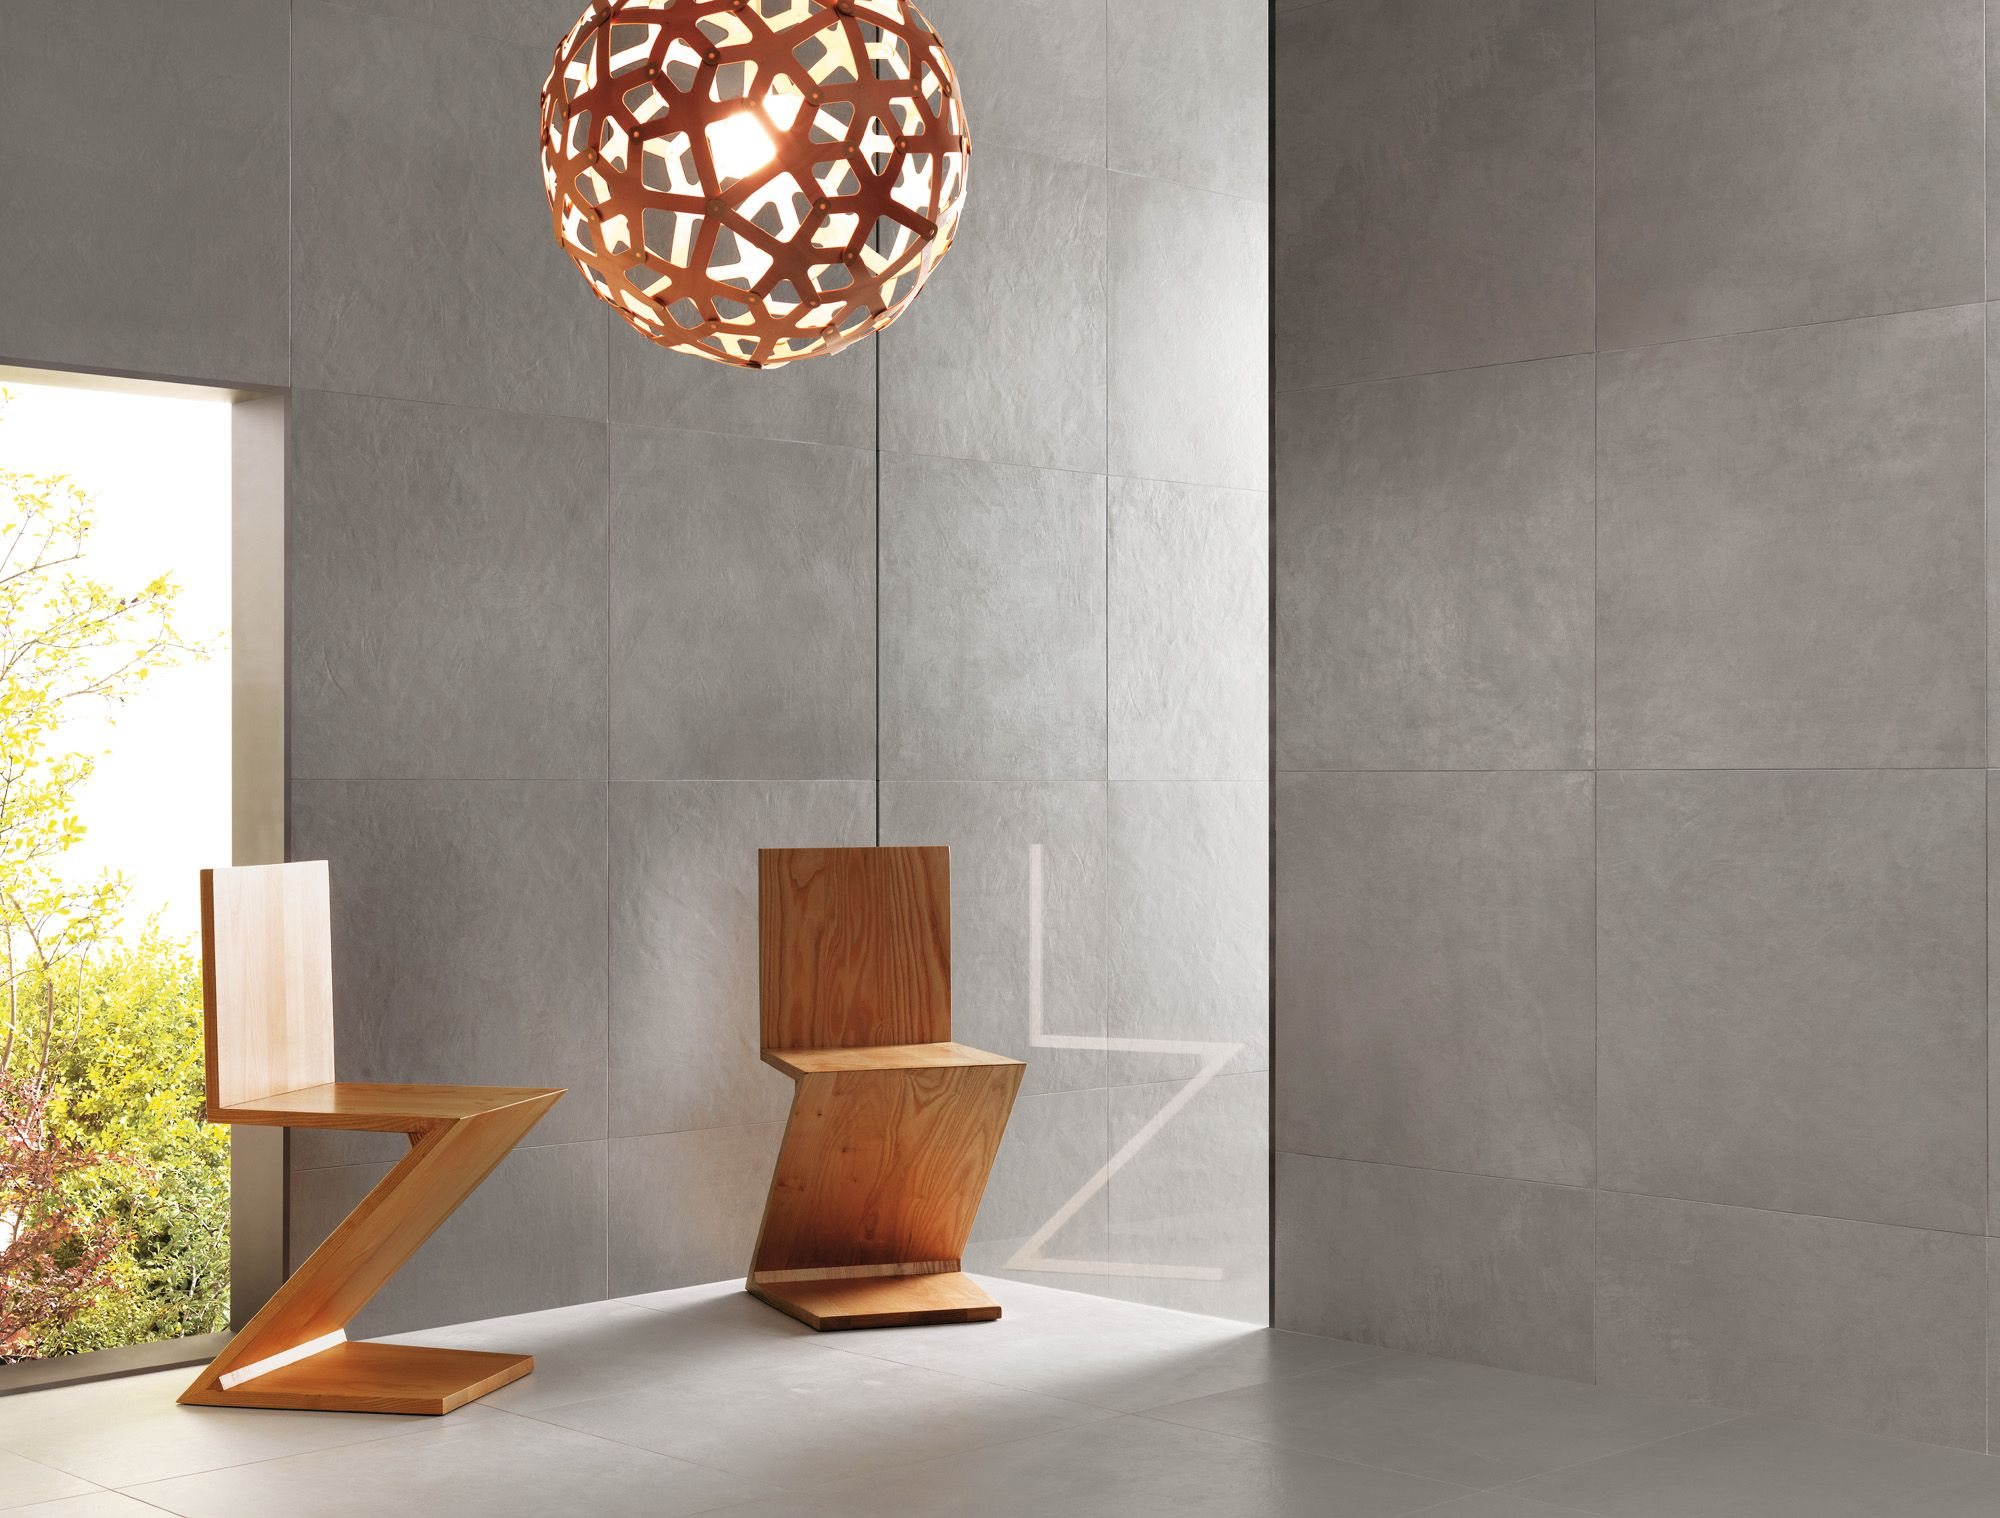 Design Evo Tiles Minoli Evolution Evolve Wall Tiles And Floor Tiles